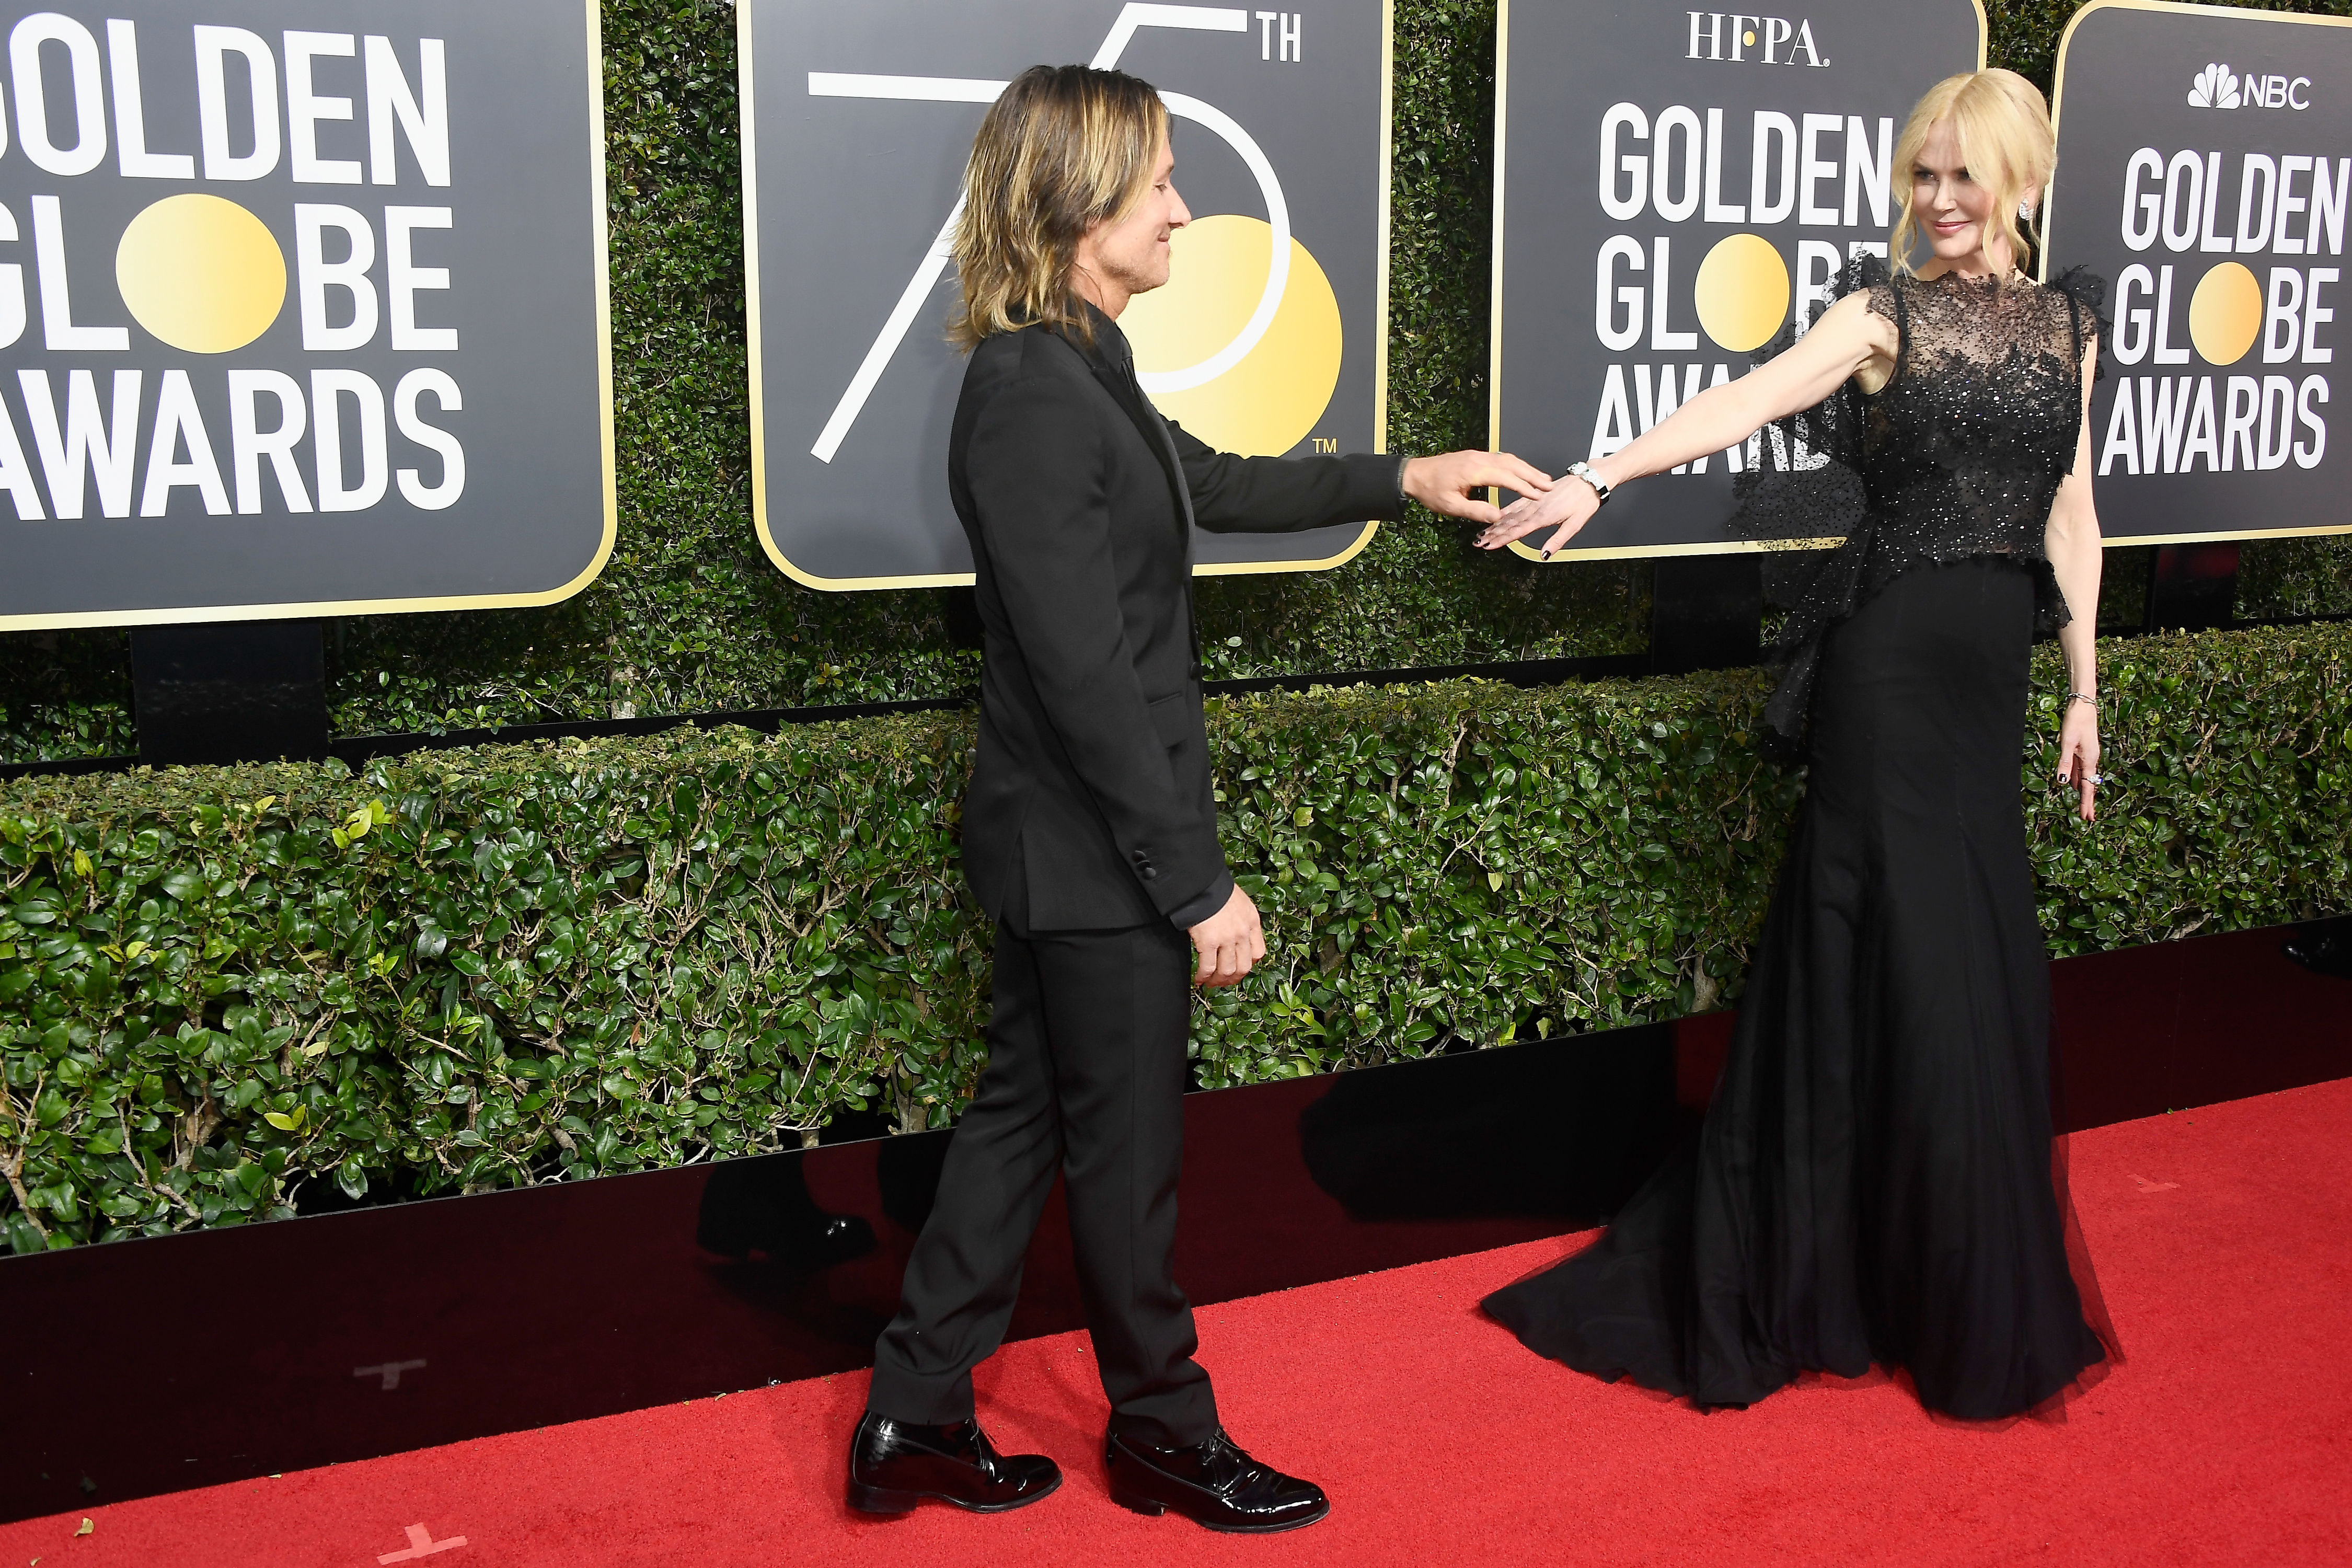 """Nicole Kidman Expresses Love for Keith Urban in Golden Globes Speech: """"When My Cheek Is Against Yours, Everything Melts Away"""""""